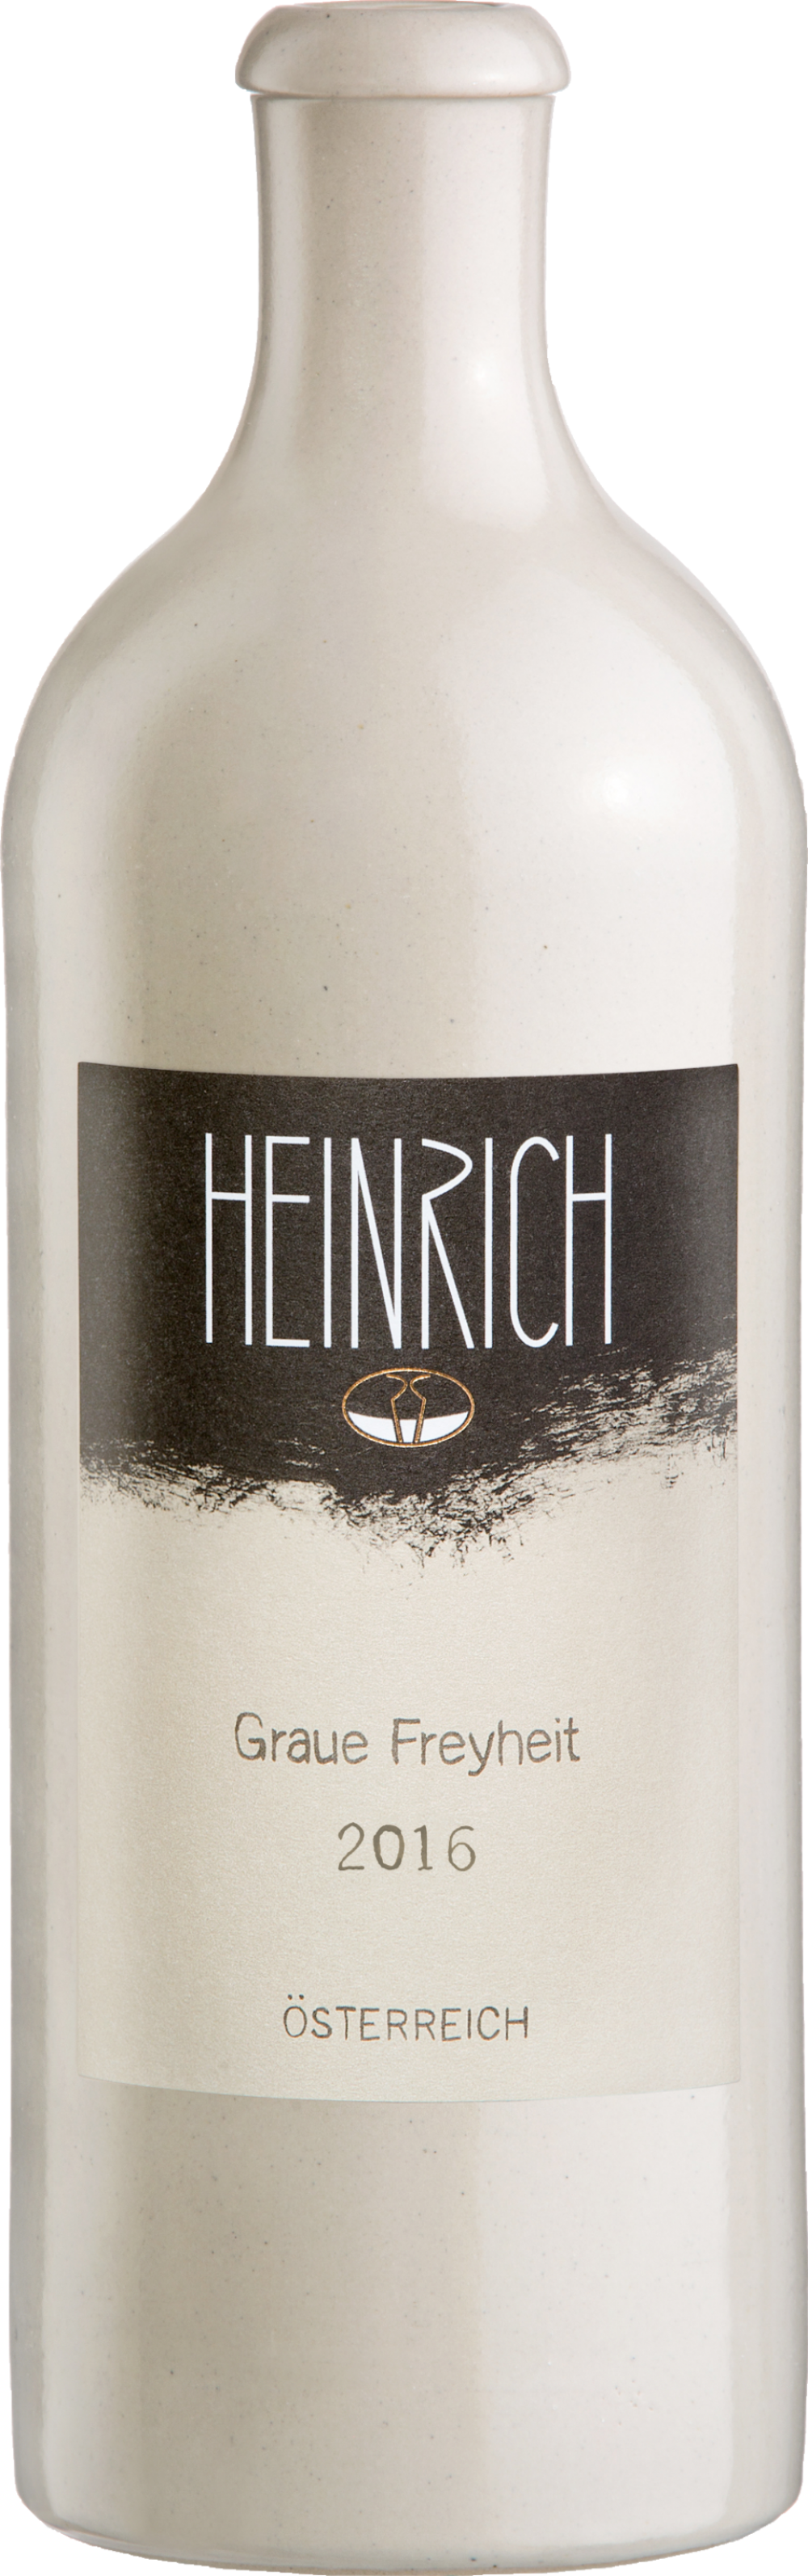 files/images/wines/Austria/gernot-heinrich/Graue Freyheit 2016.png